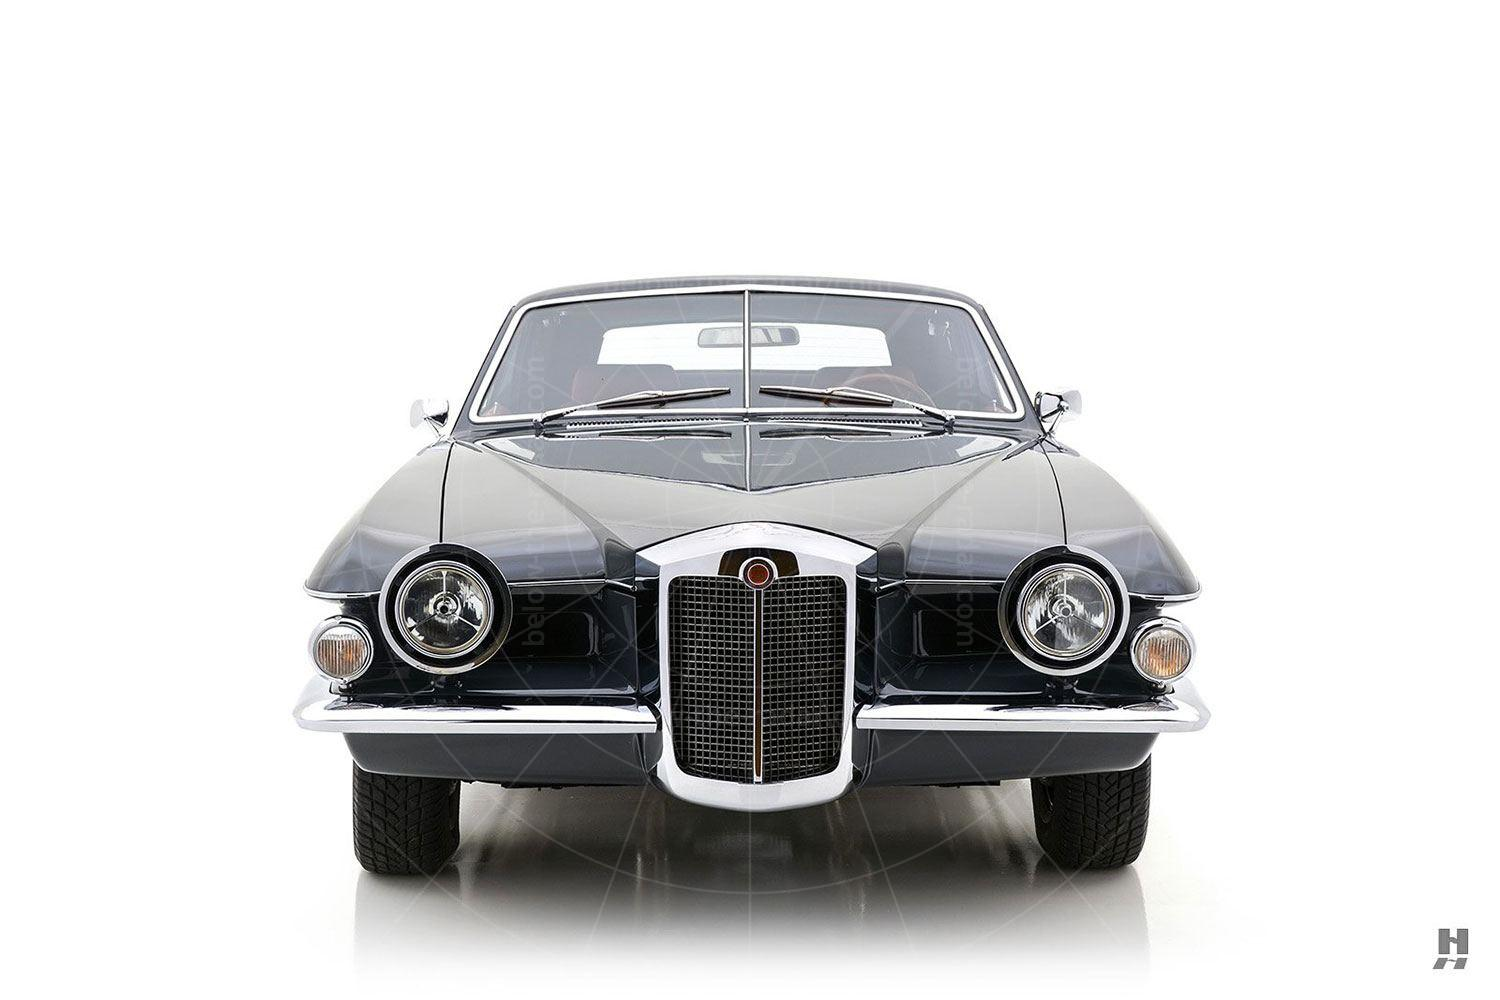 1971 Stutz Blackhawk coupé